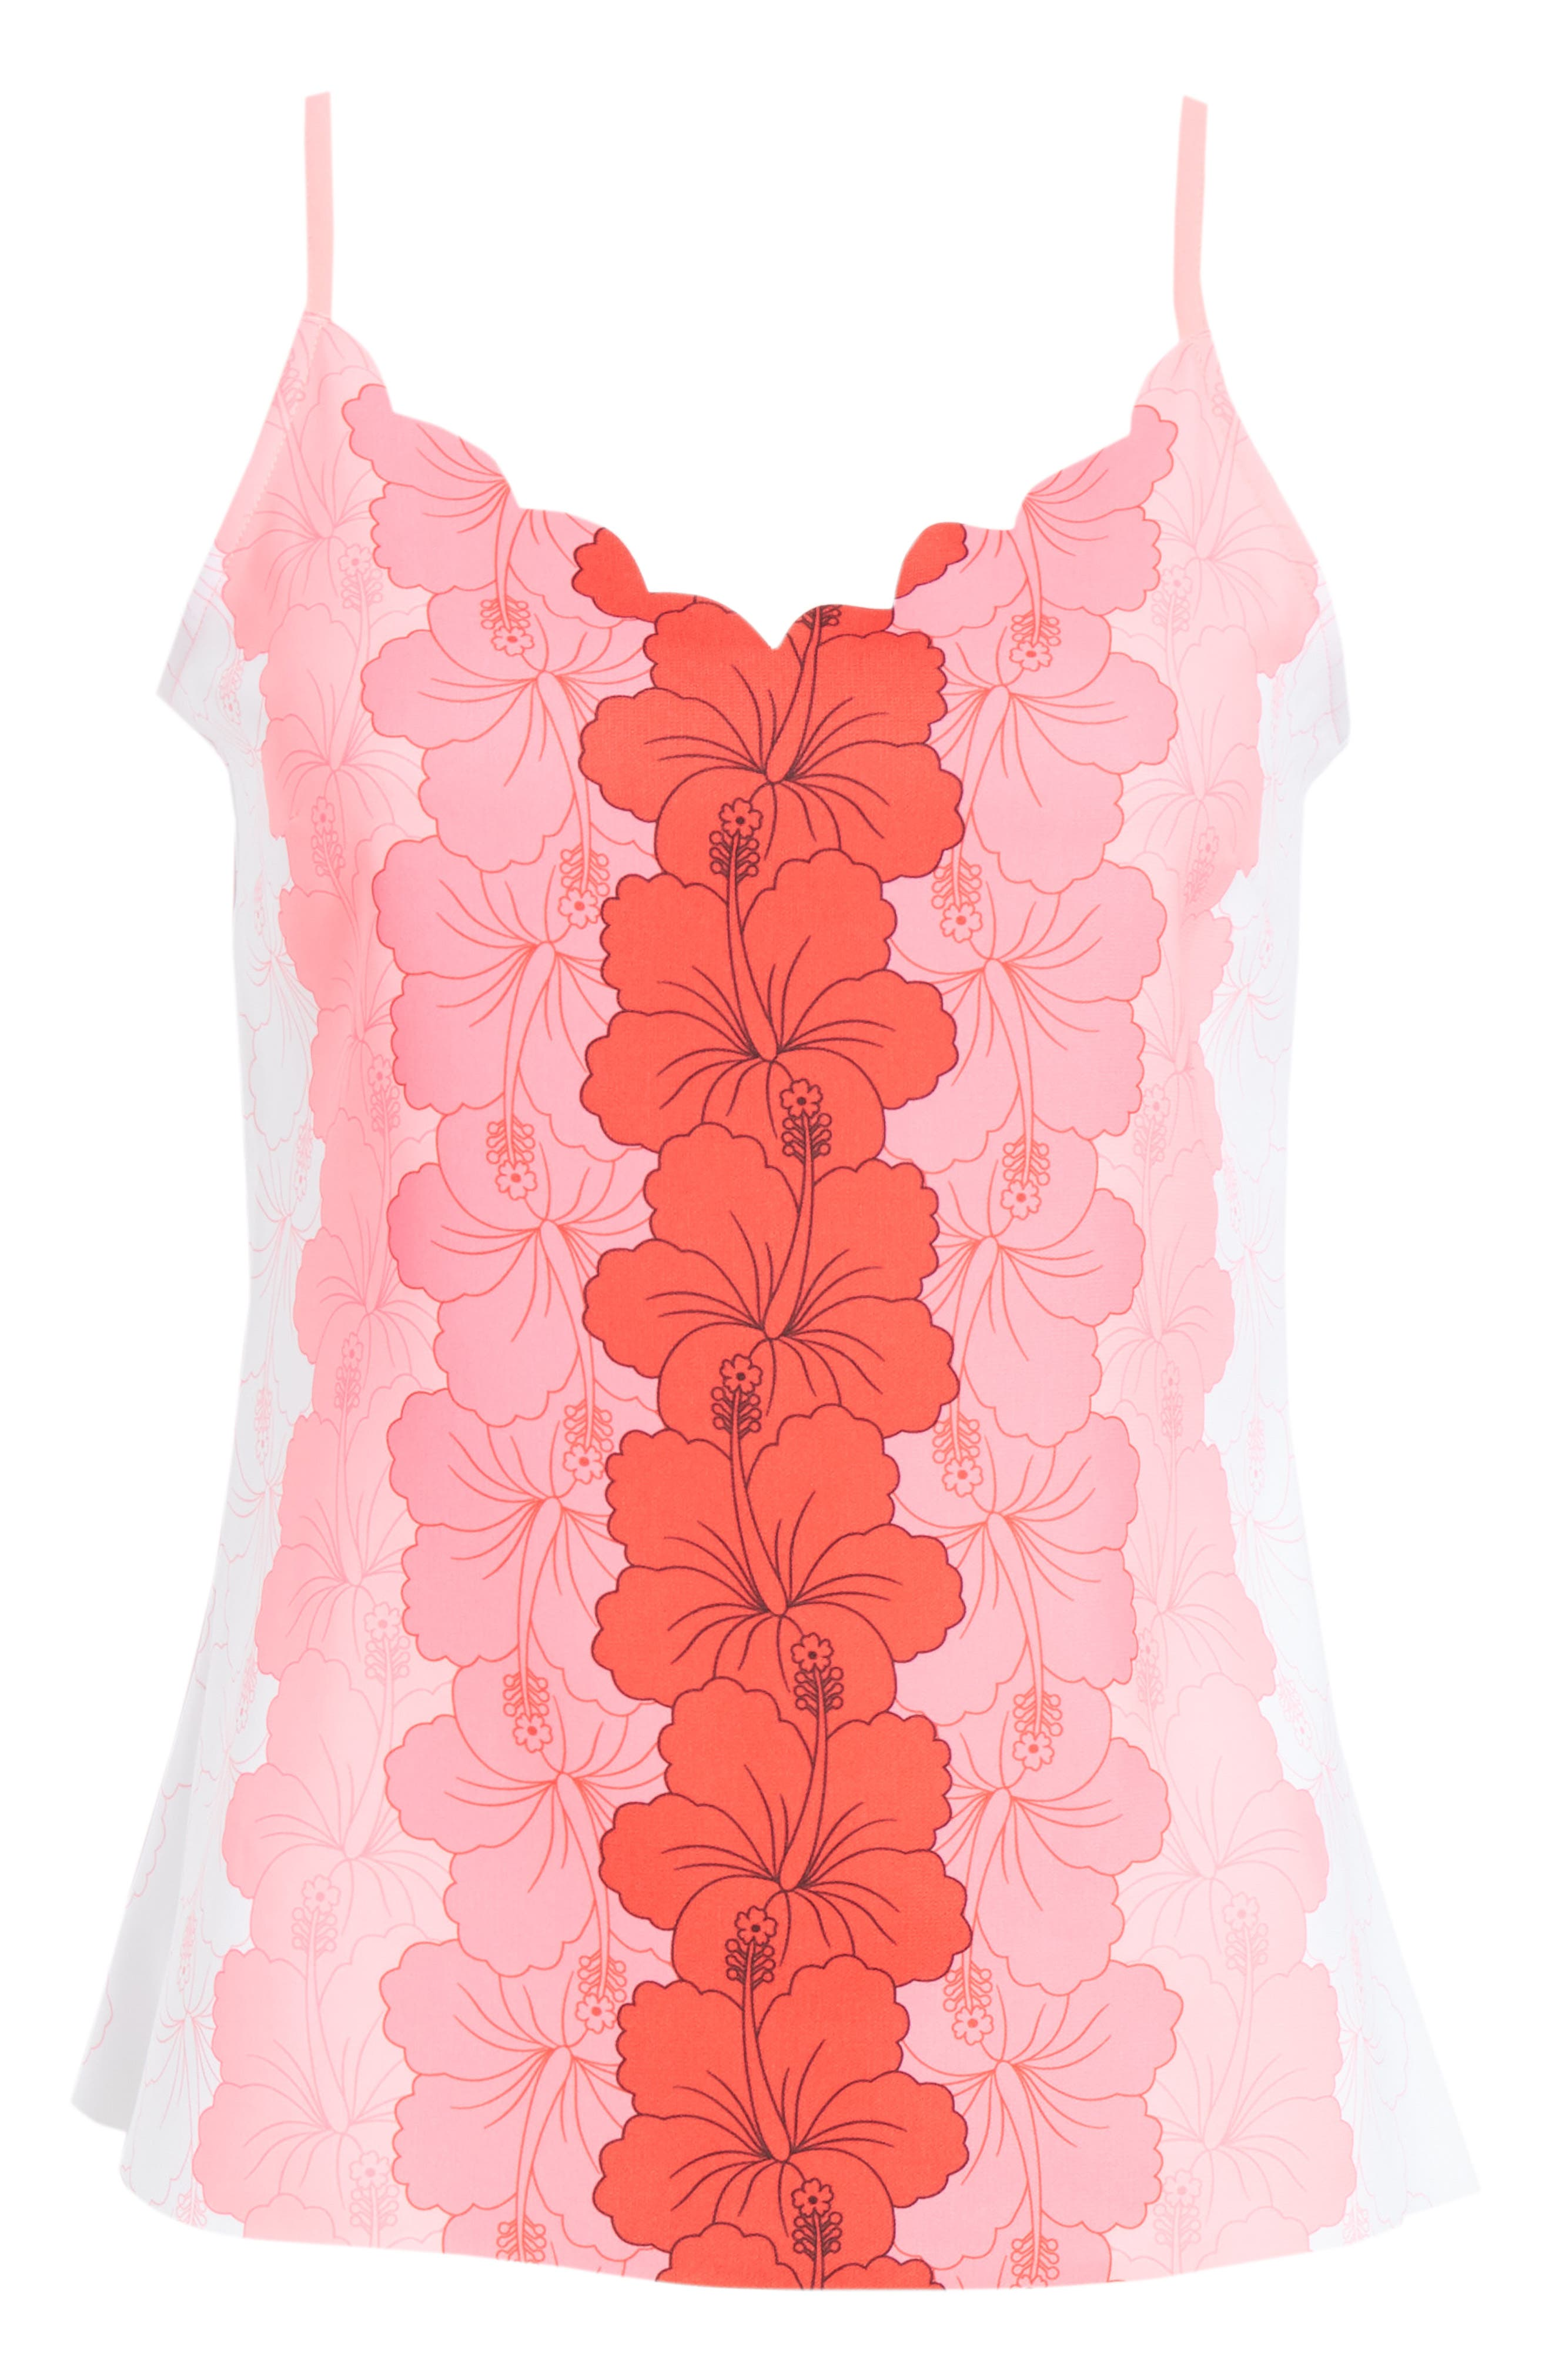 TED BAKER LONDON,                             Romaa Happiness Camisole,                             Alternate thumbnail 6, color,                             671